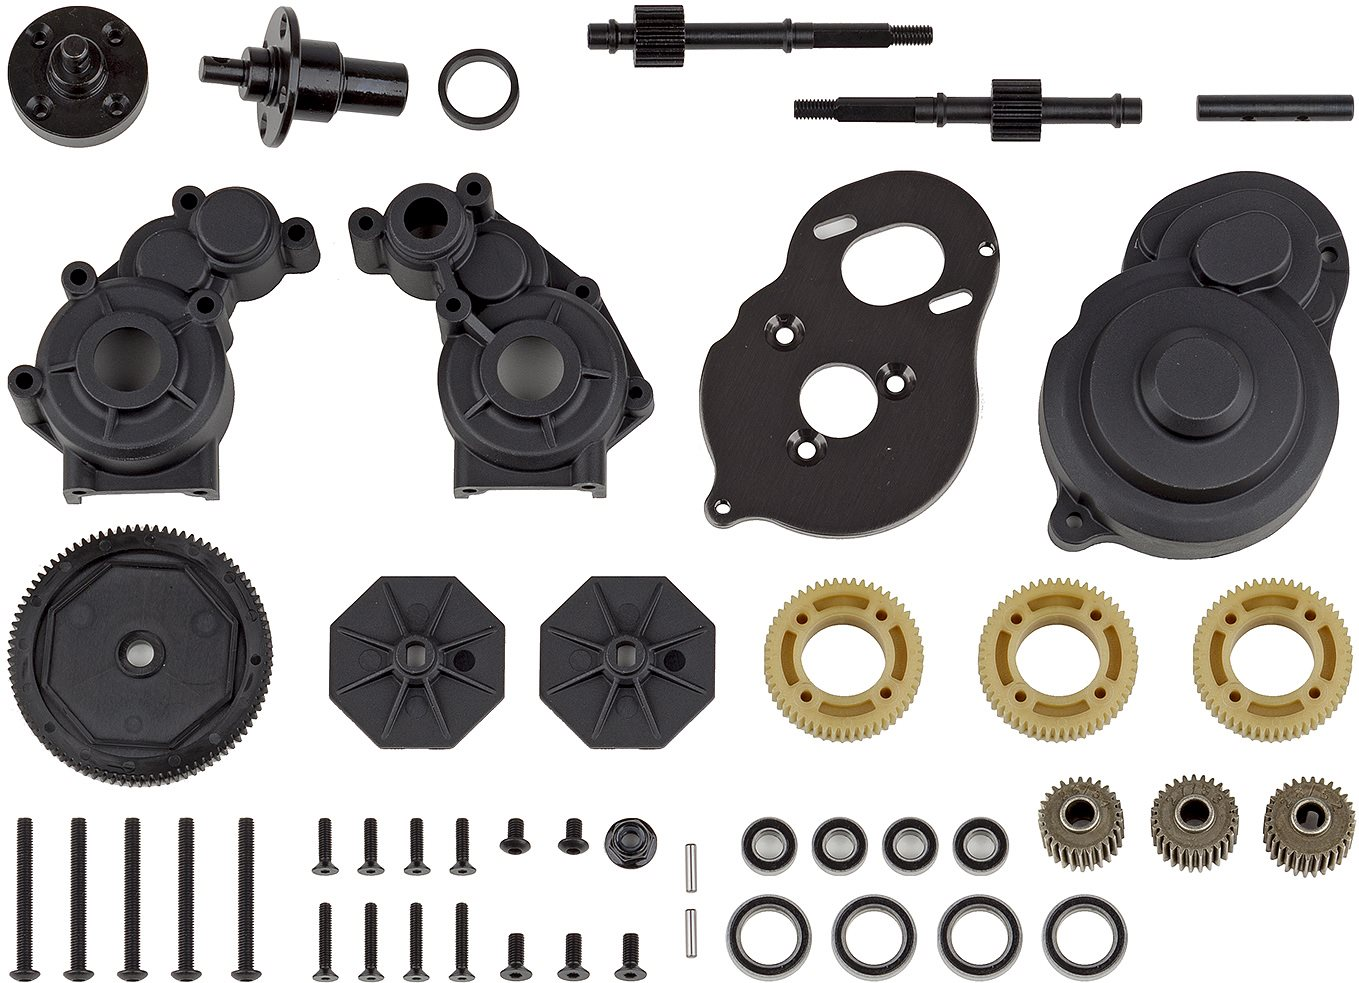 Associated Enduro Stealth X Gearbox Kit